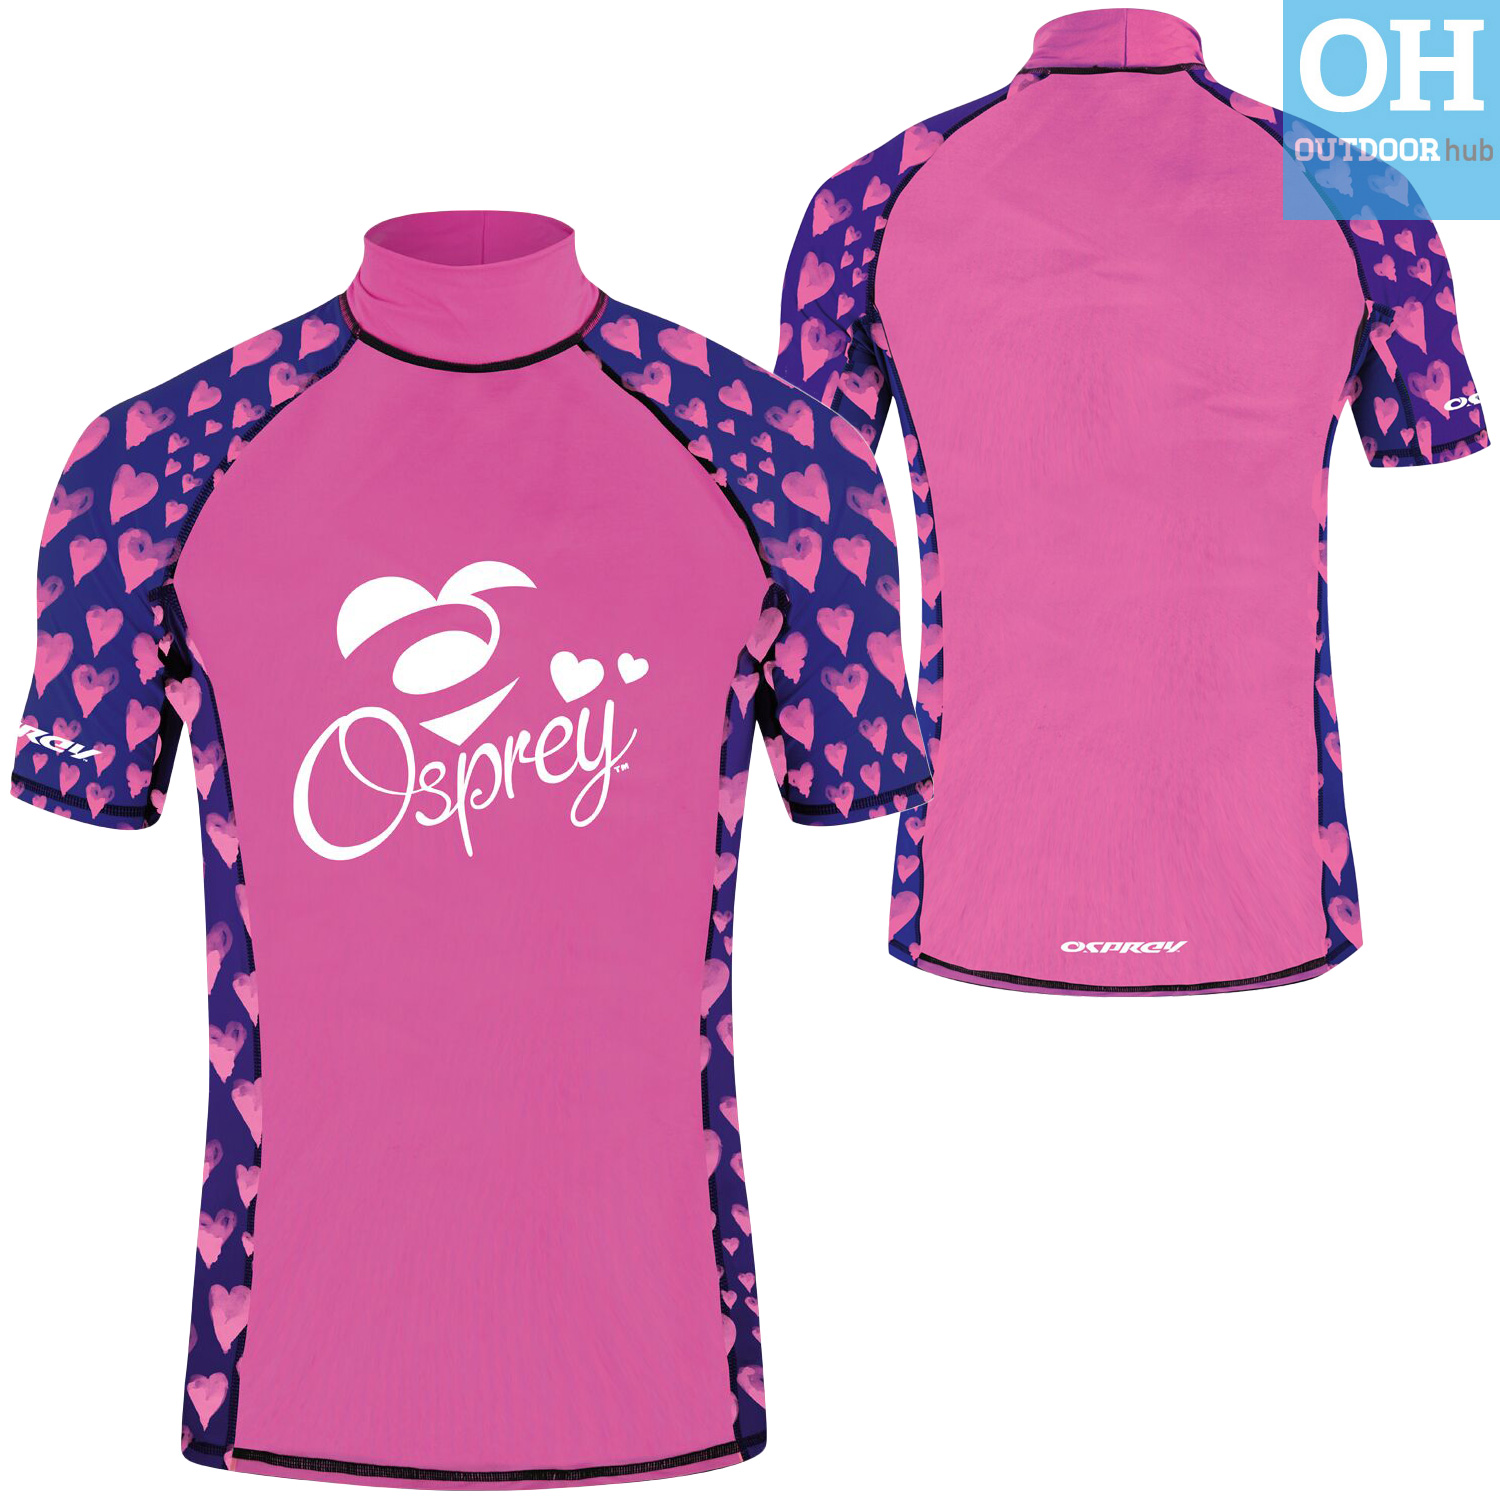 Osprey-Ladies-Short-Sleeve-Rash-Vest-Womens-Surf-T-Shirt-UV-50-Protection-Guard thumbnail 19